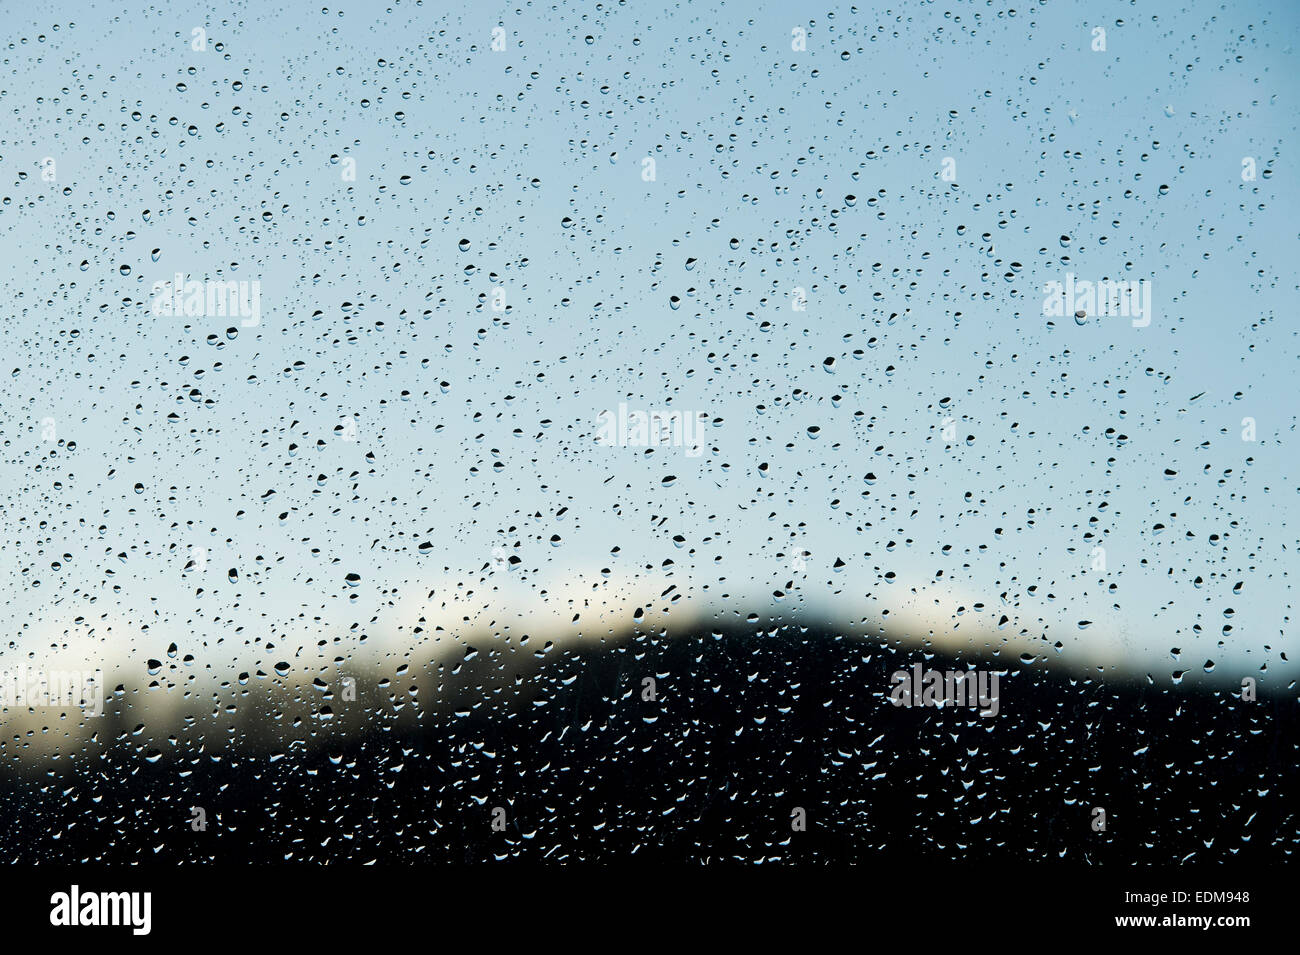 Raindrops on a window pane - Stock Image